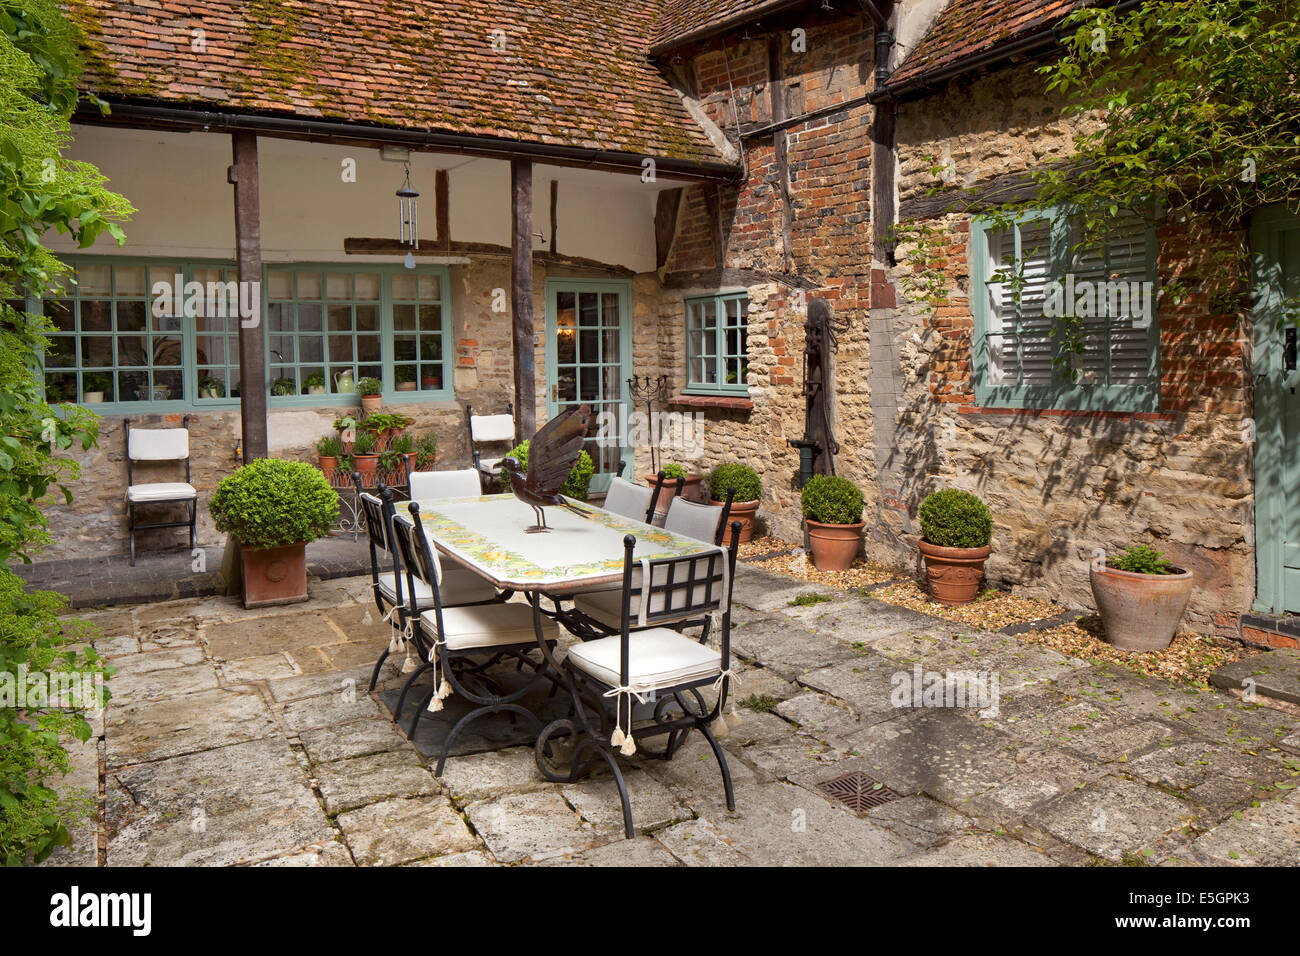 outdoor garden terrace eating area in courtyard of house,England - Stock Image